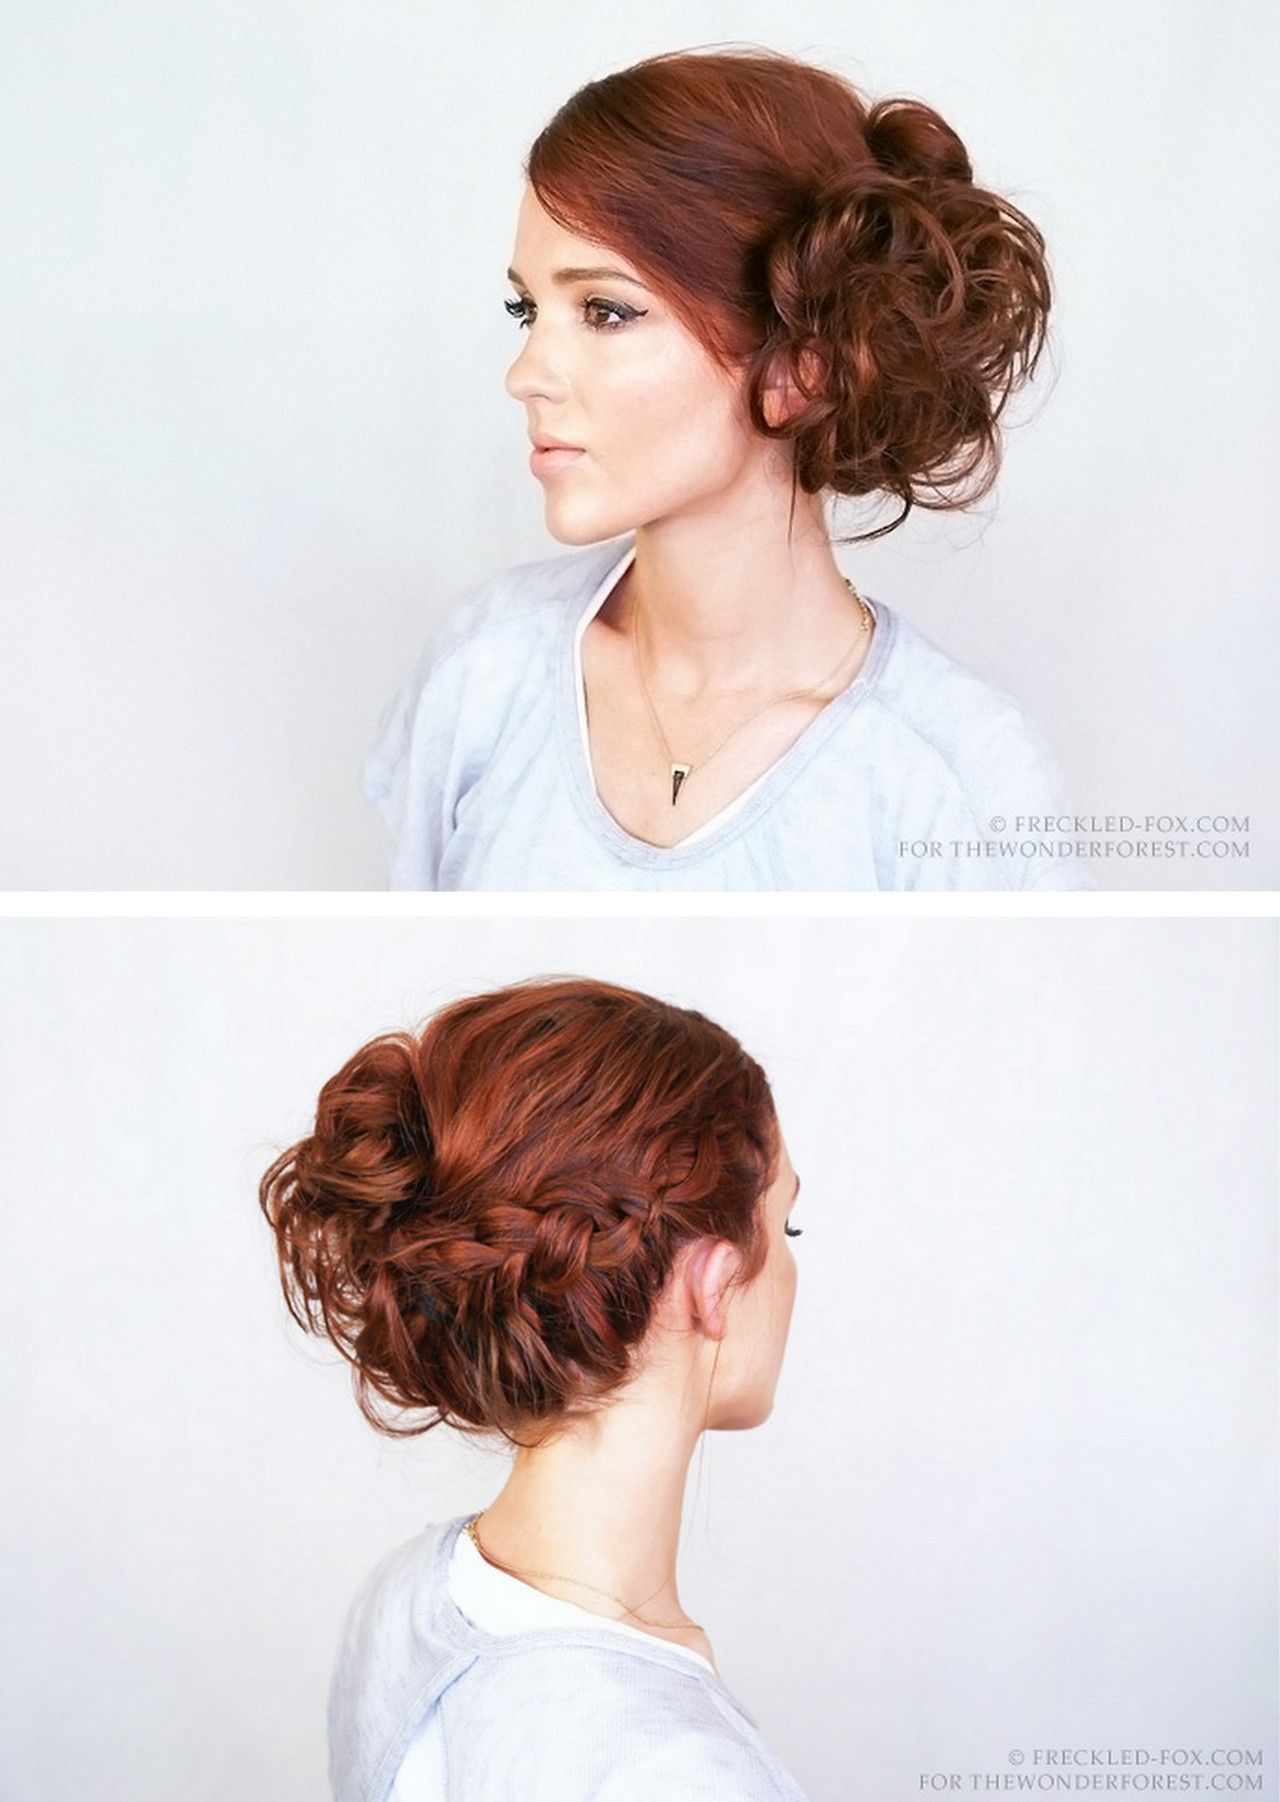 DIY Braided Updo Tutorial from The Freckled Fox for Wonder Forest ...